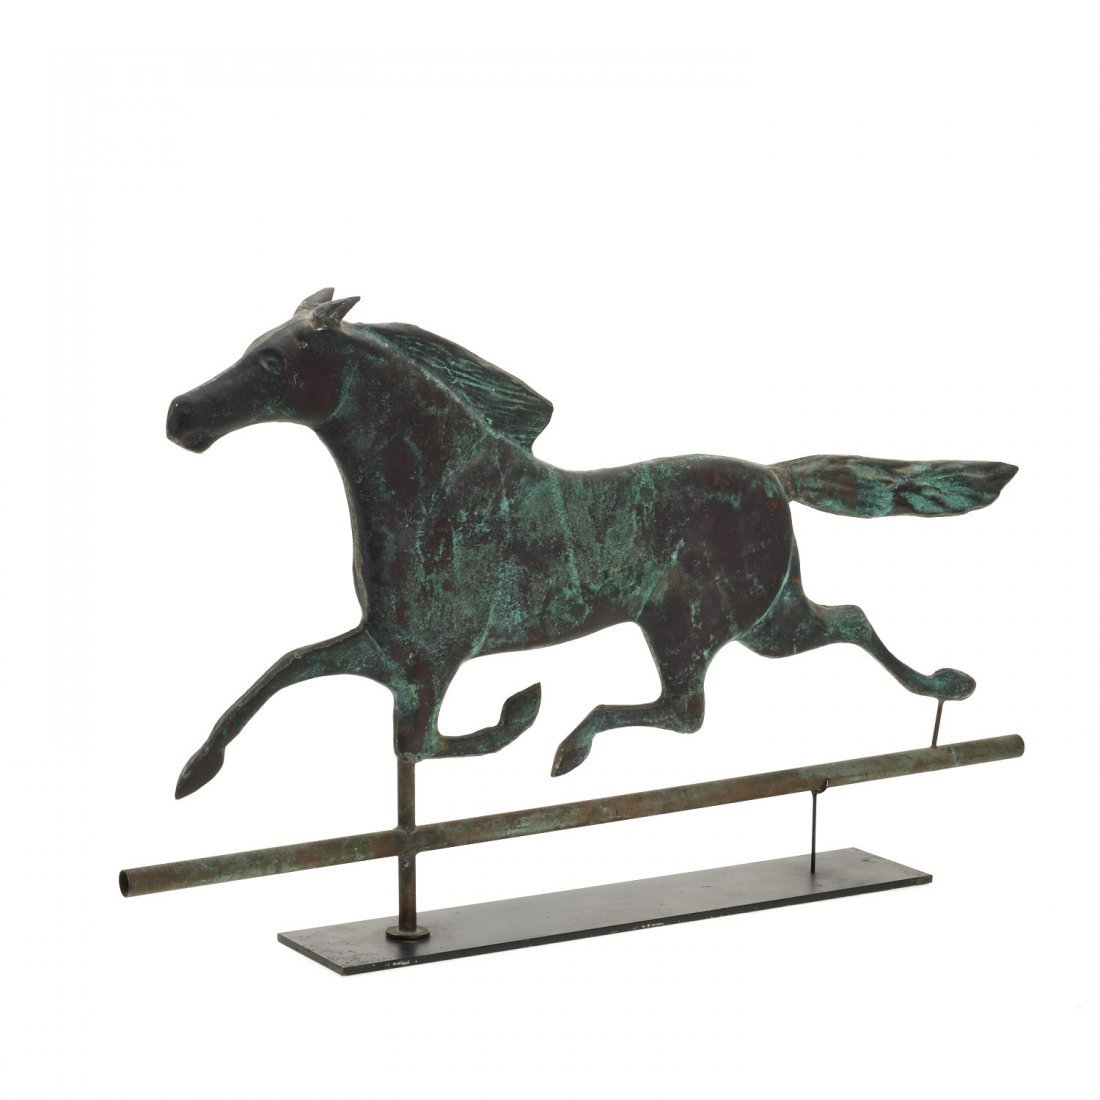 Antique American copper running horse weathervane